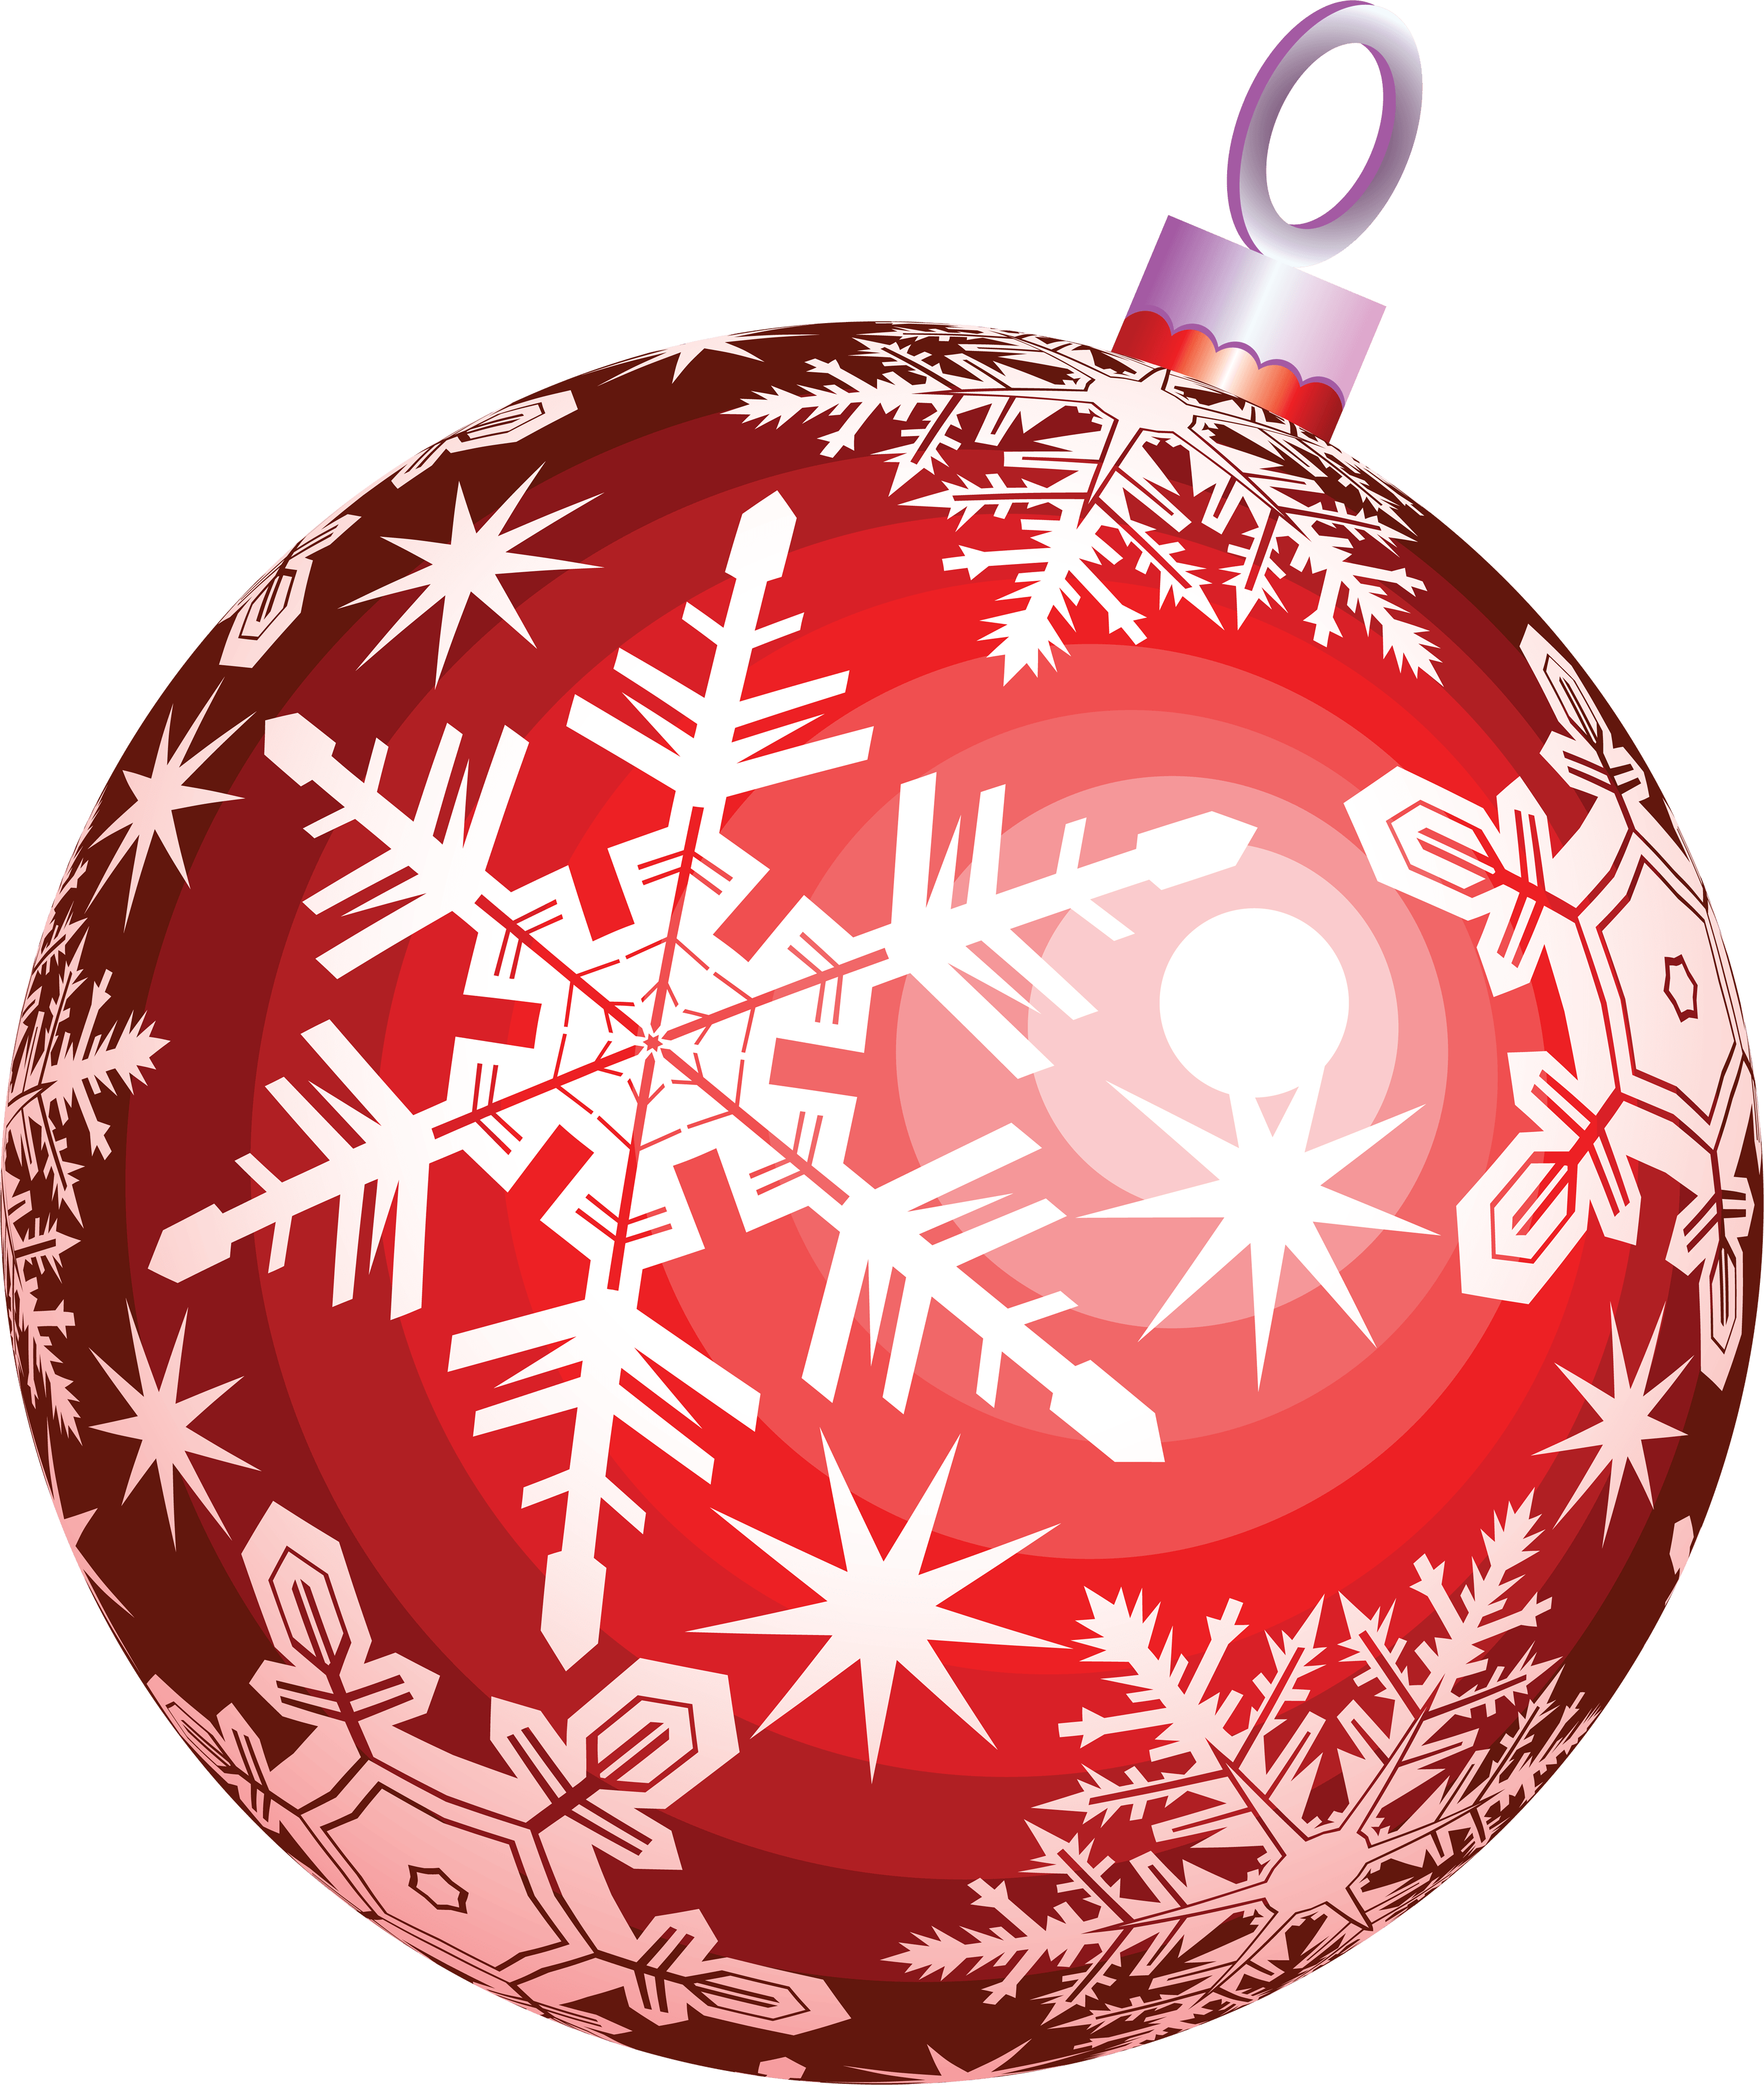 Red Christmas Ball Toy Png Image PNG Image